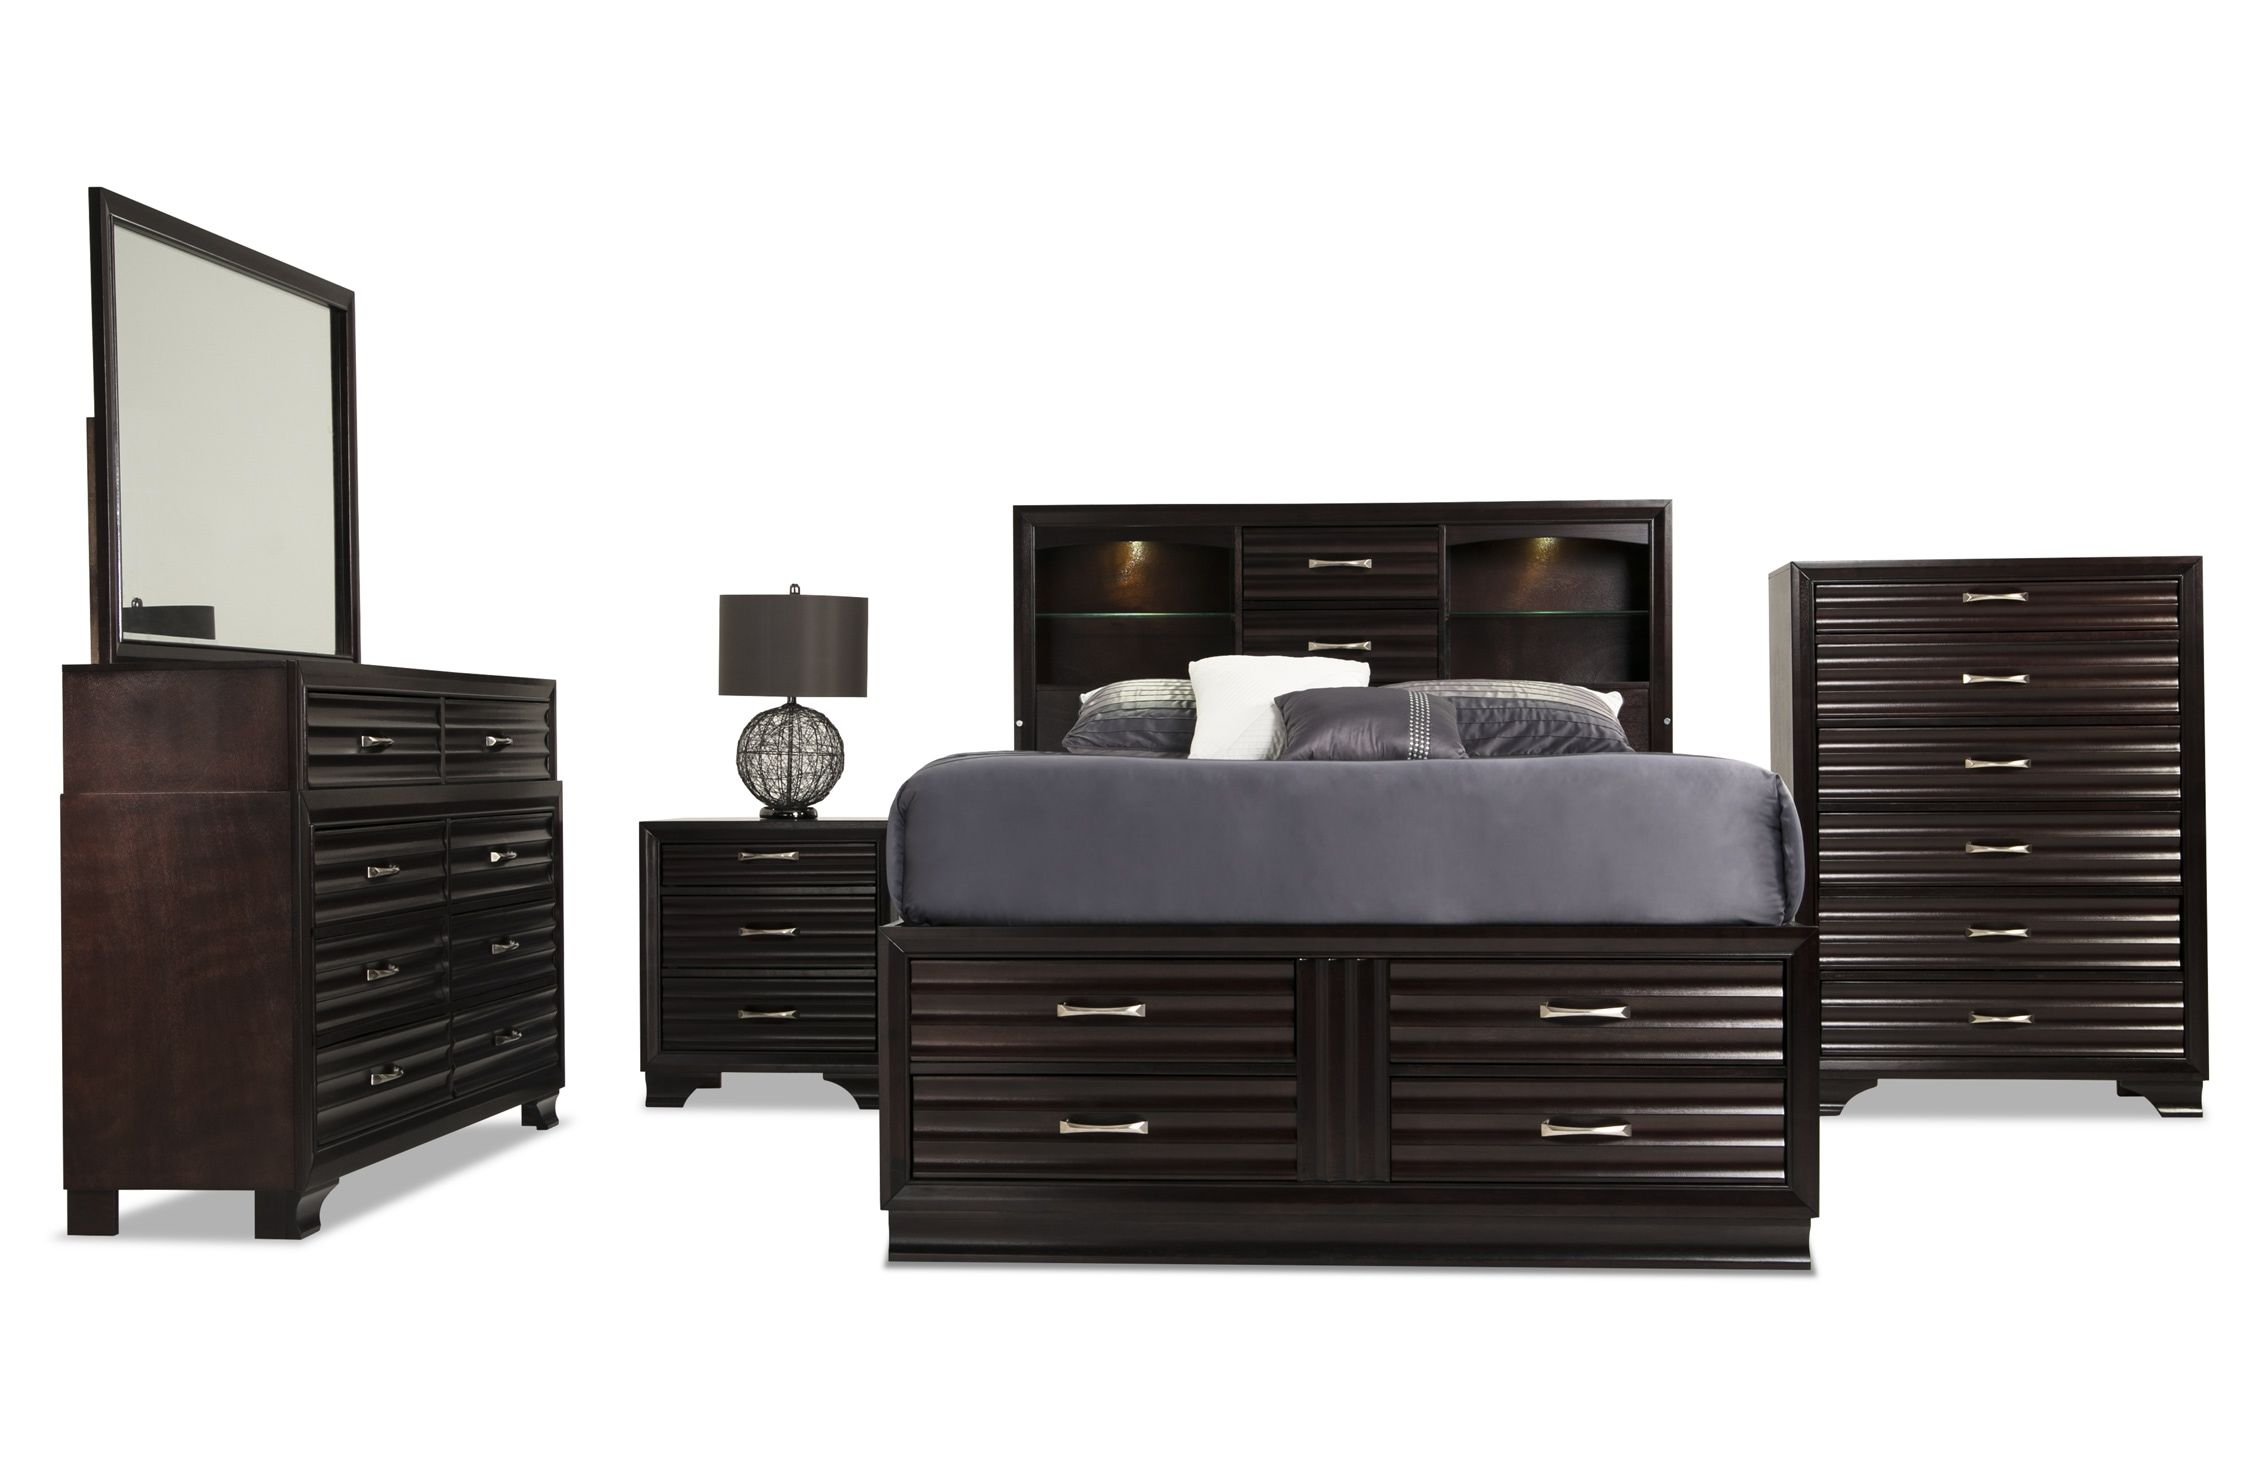 Midtown Storage Bedroom Set Bedroom Sets Storage Furniture Bedroom Bedroom Furniture Sets